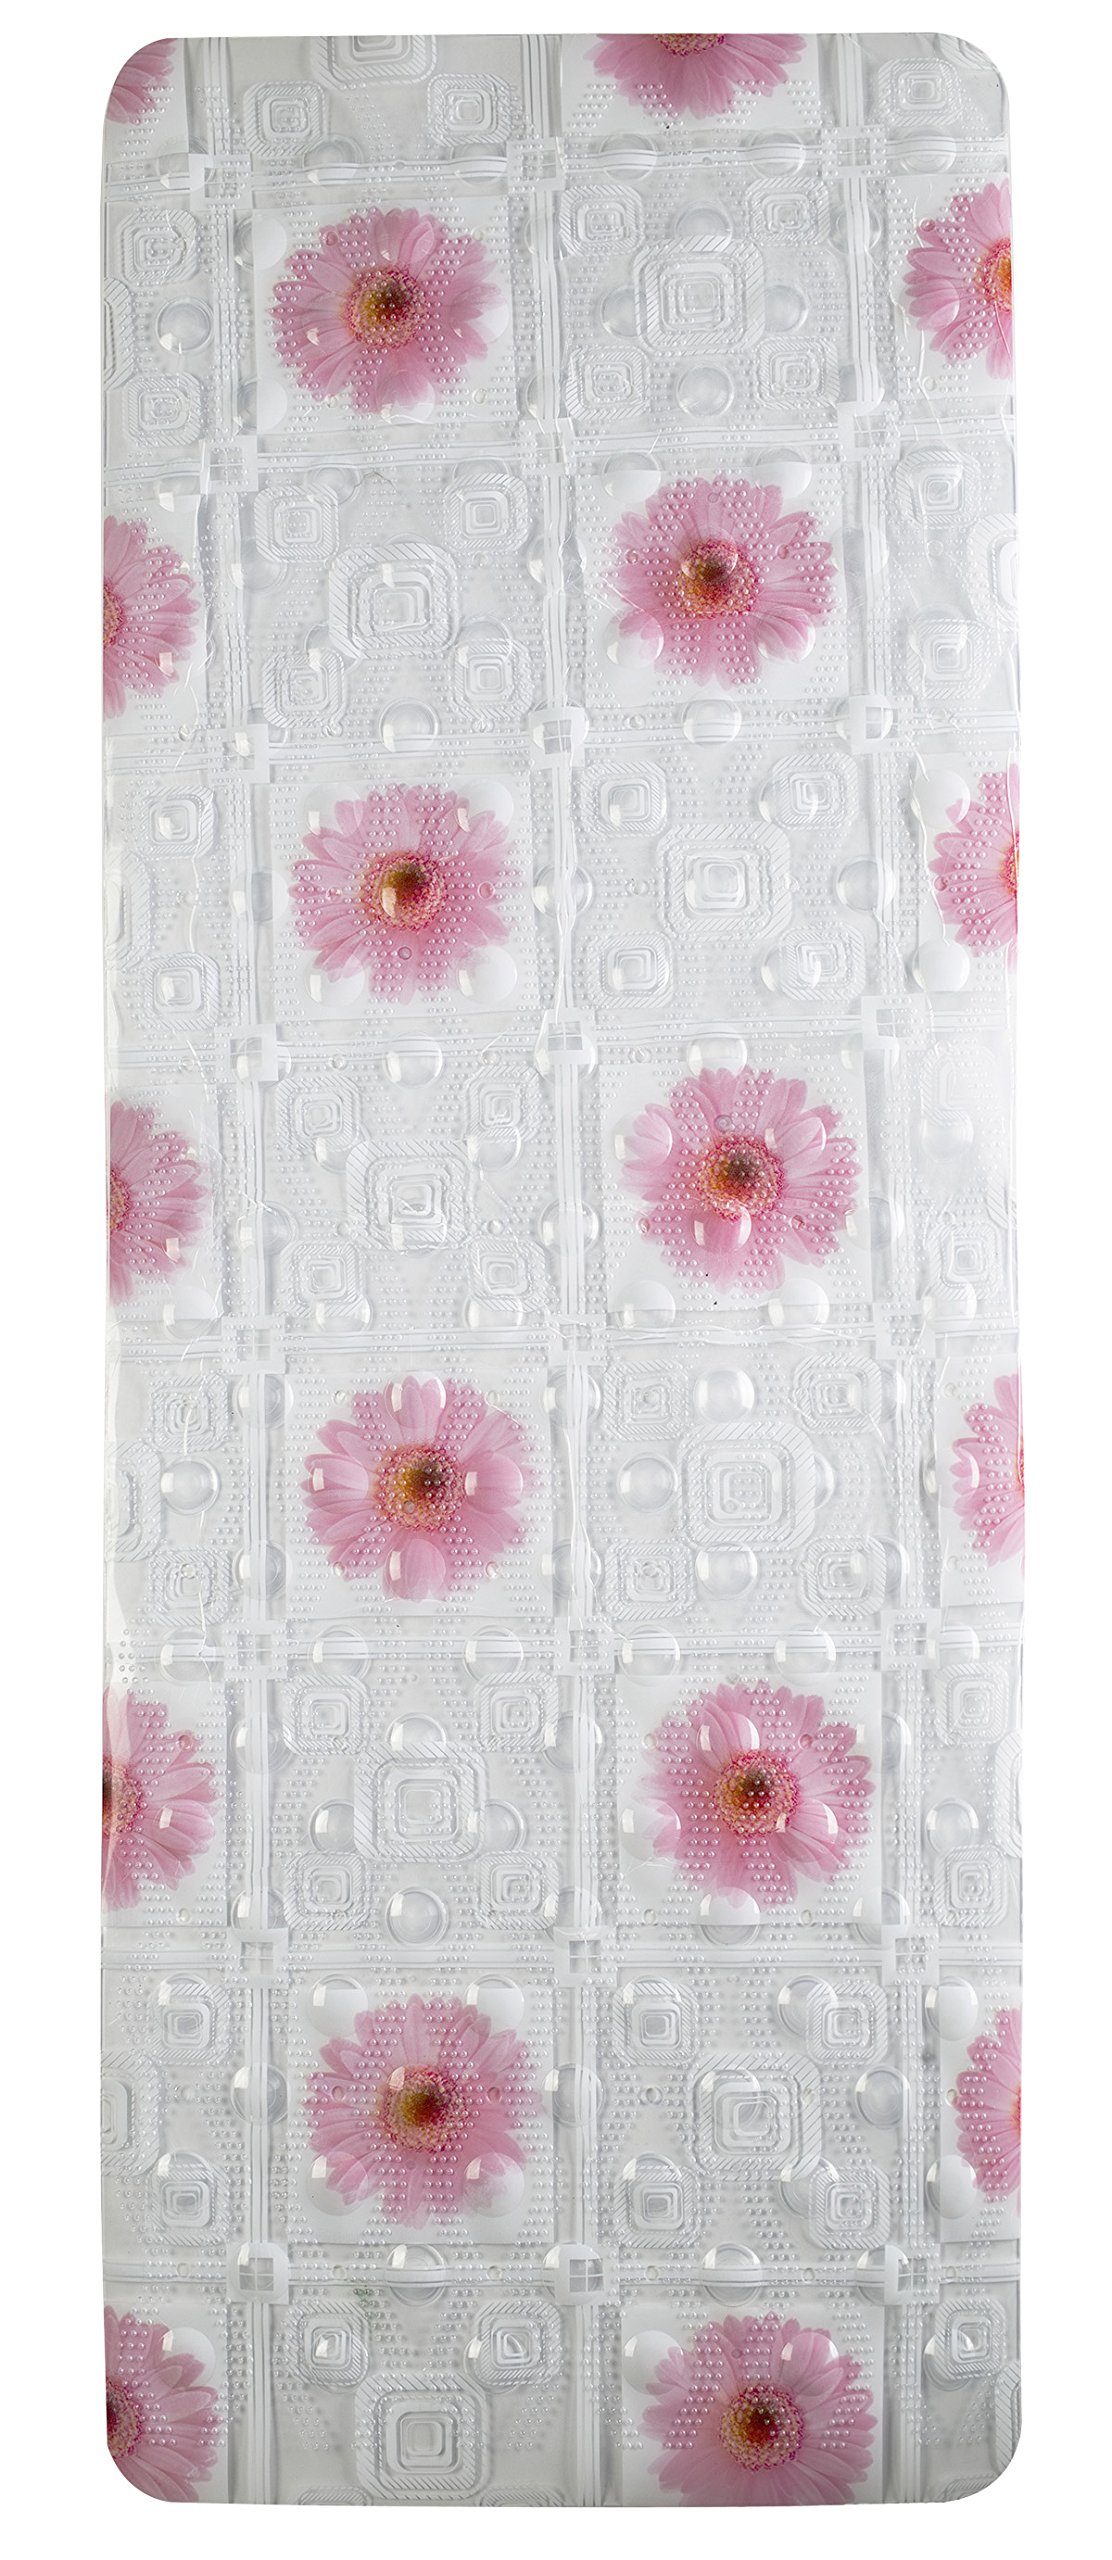 Get Quotations Flower Textured Surface Dots Bath Mat Extra Long Anti Slip Tub Bacterial